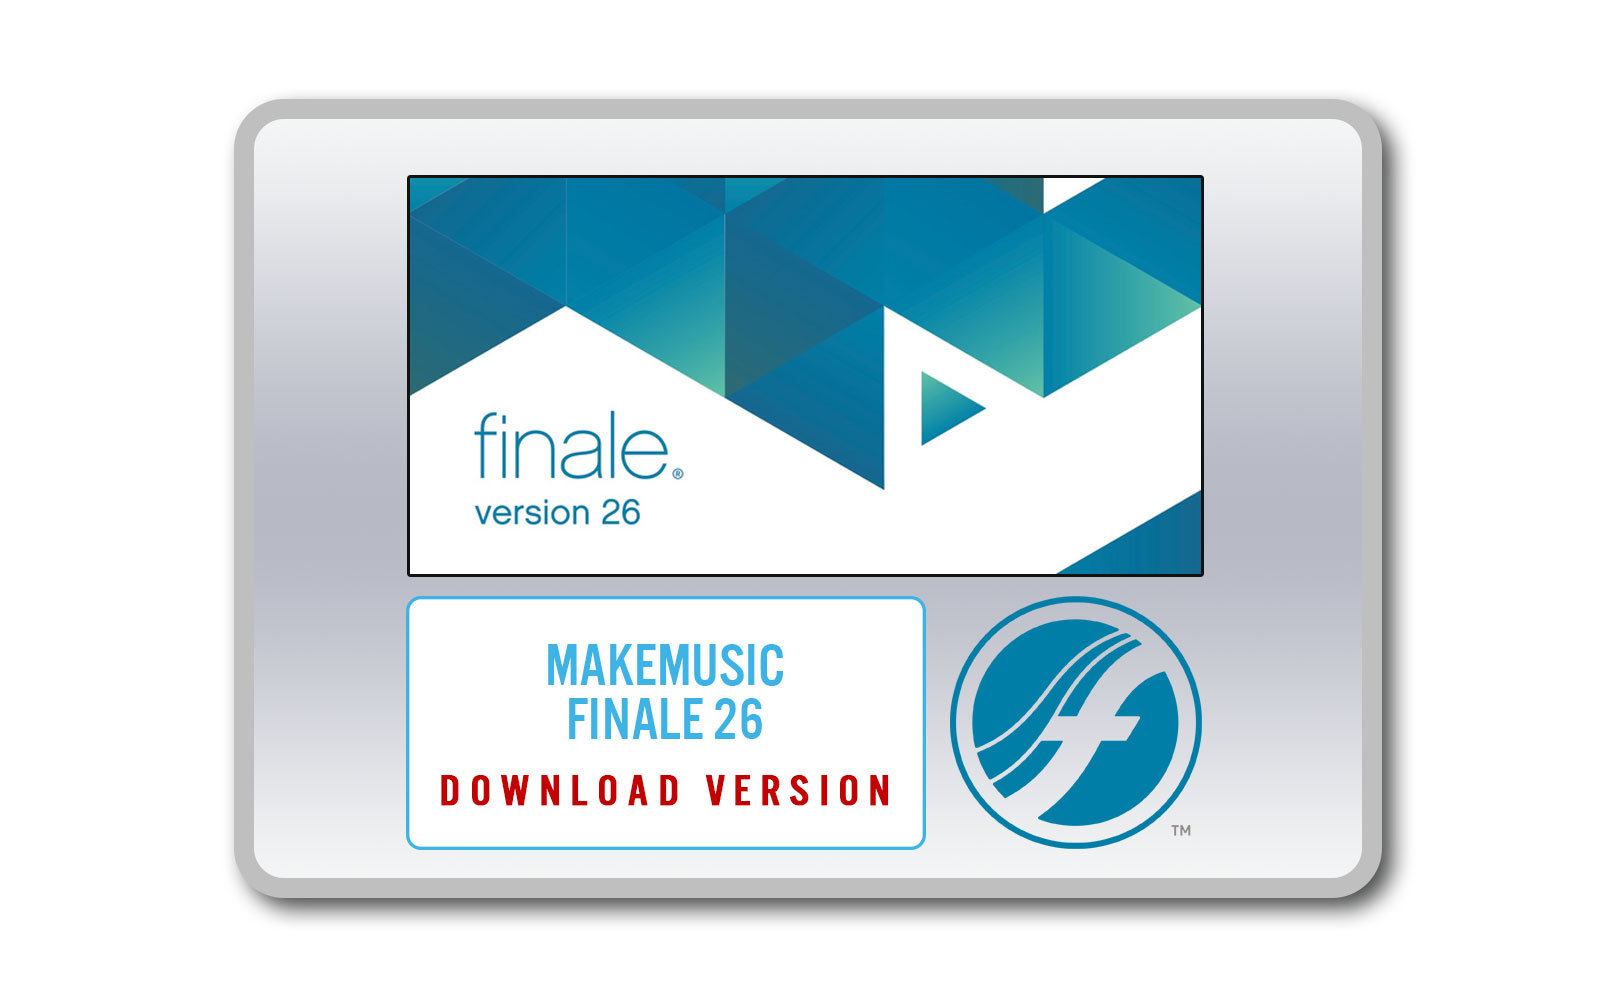 makemusic-finale-26-update-von-finale-25-download-, 149.95 EUR @ music-and-more-store